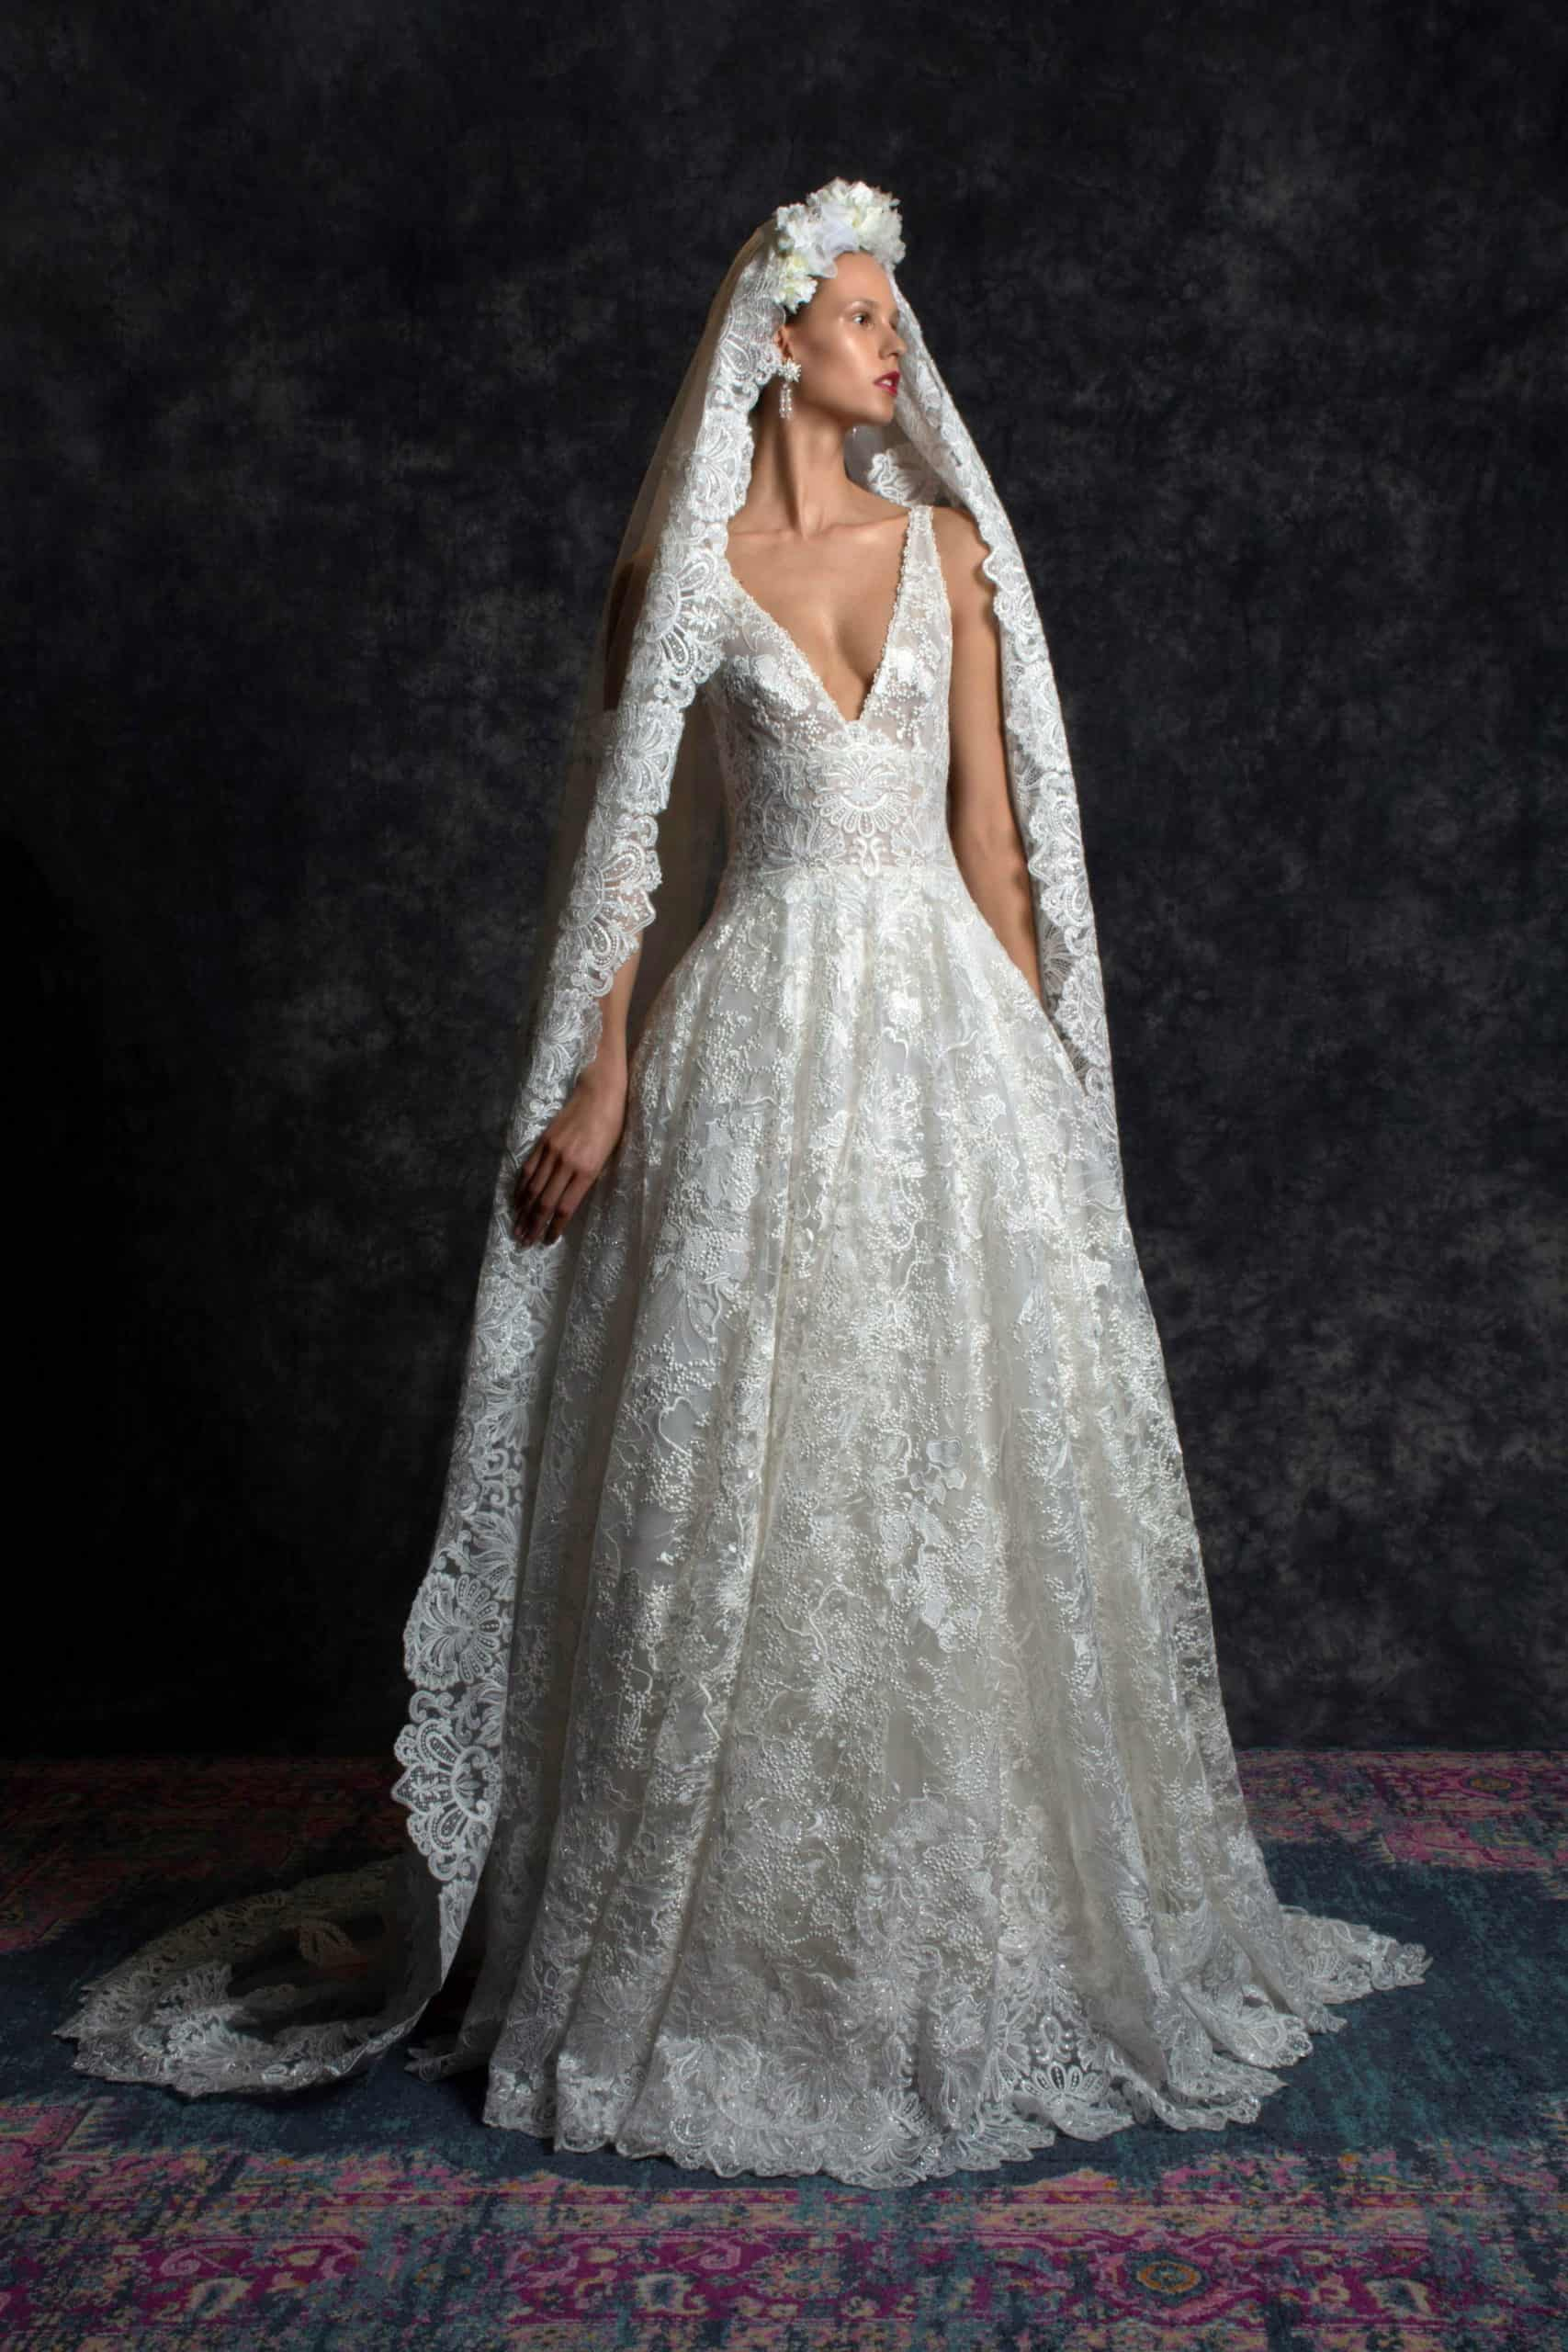 classic lased a-line wedding dress with a veil by Naeem Khan